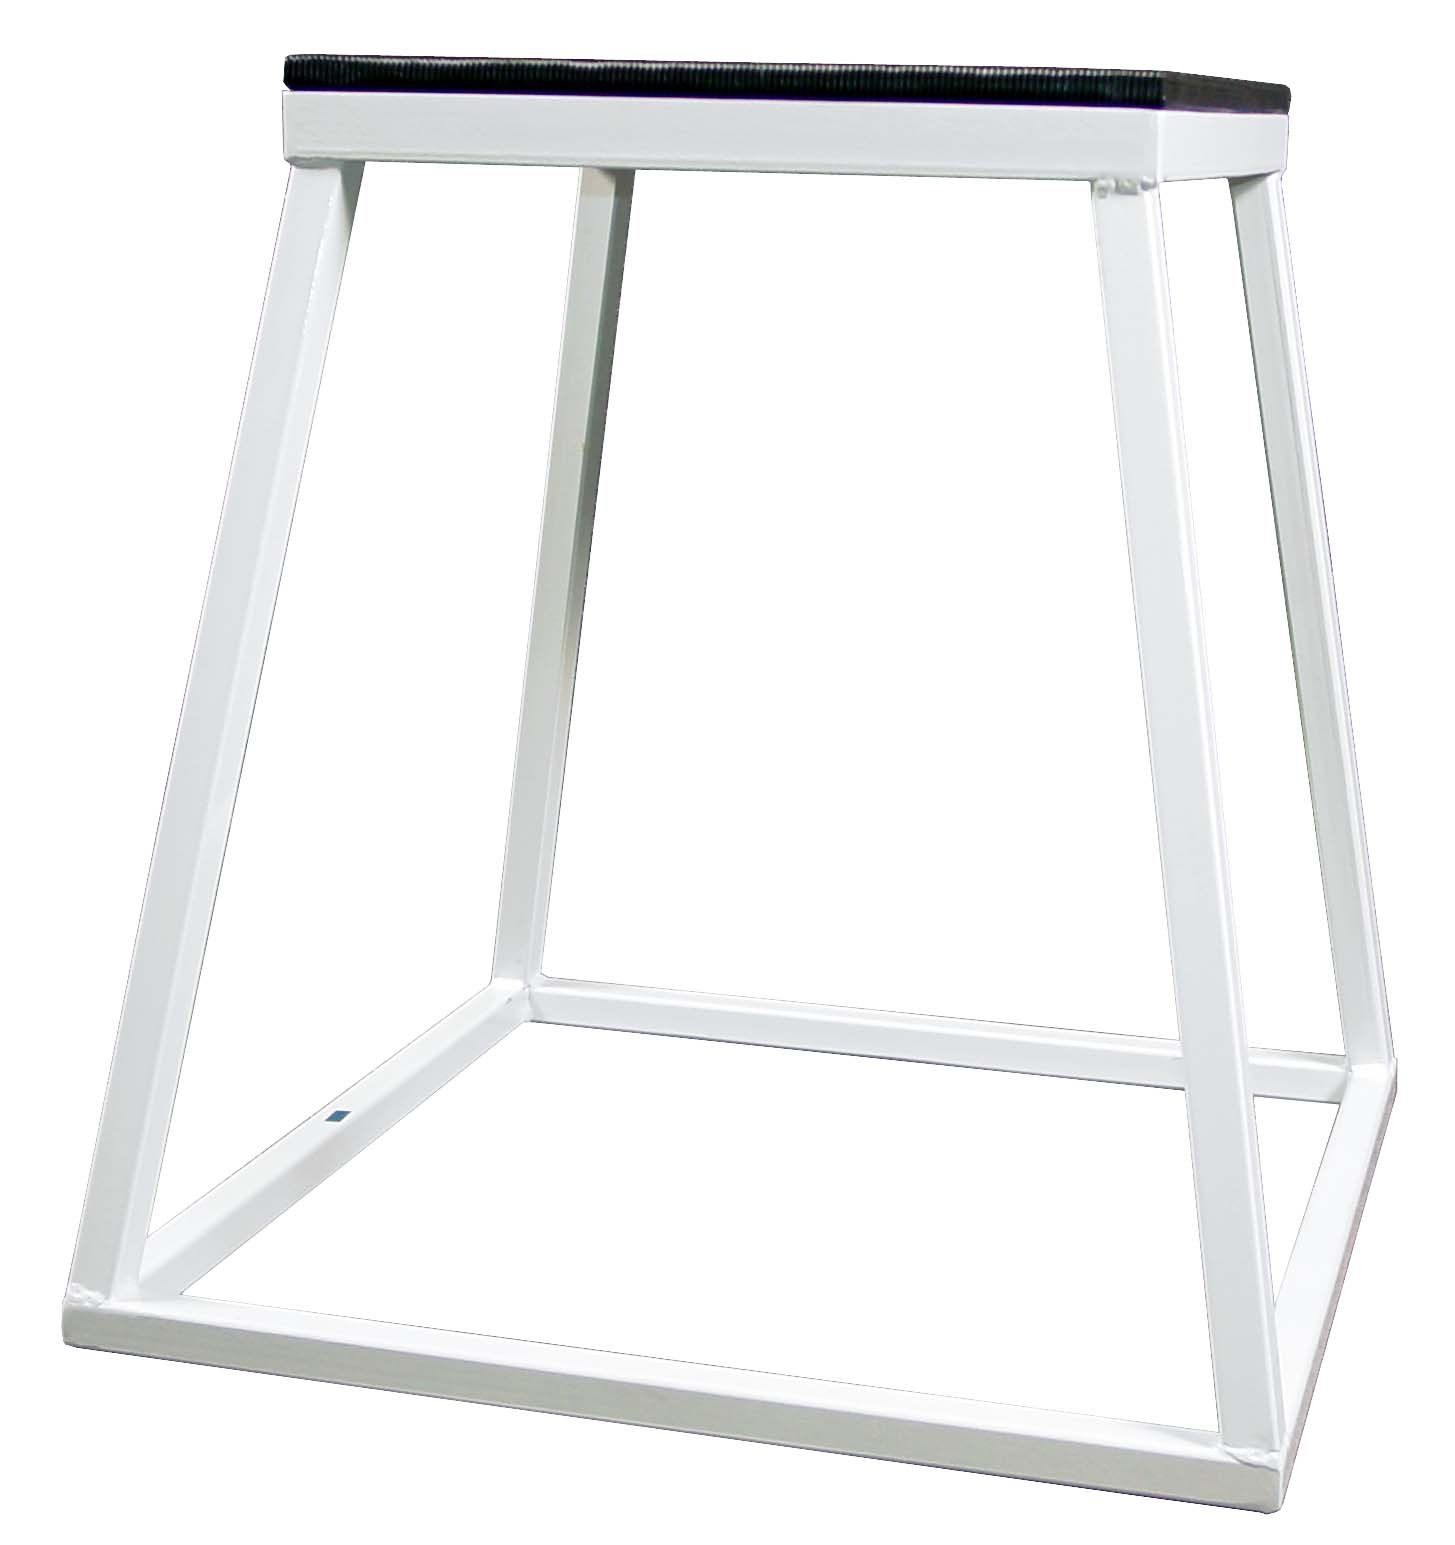 Plyometric Platform Box Set- 12'',18'',24'' White by Ader Sporting Goods (Image #4)